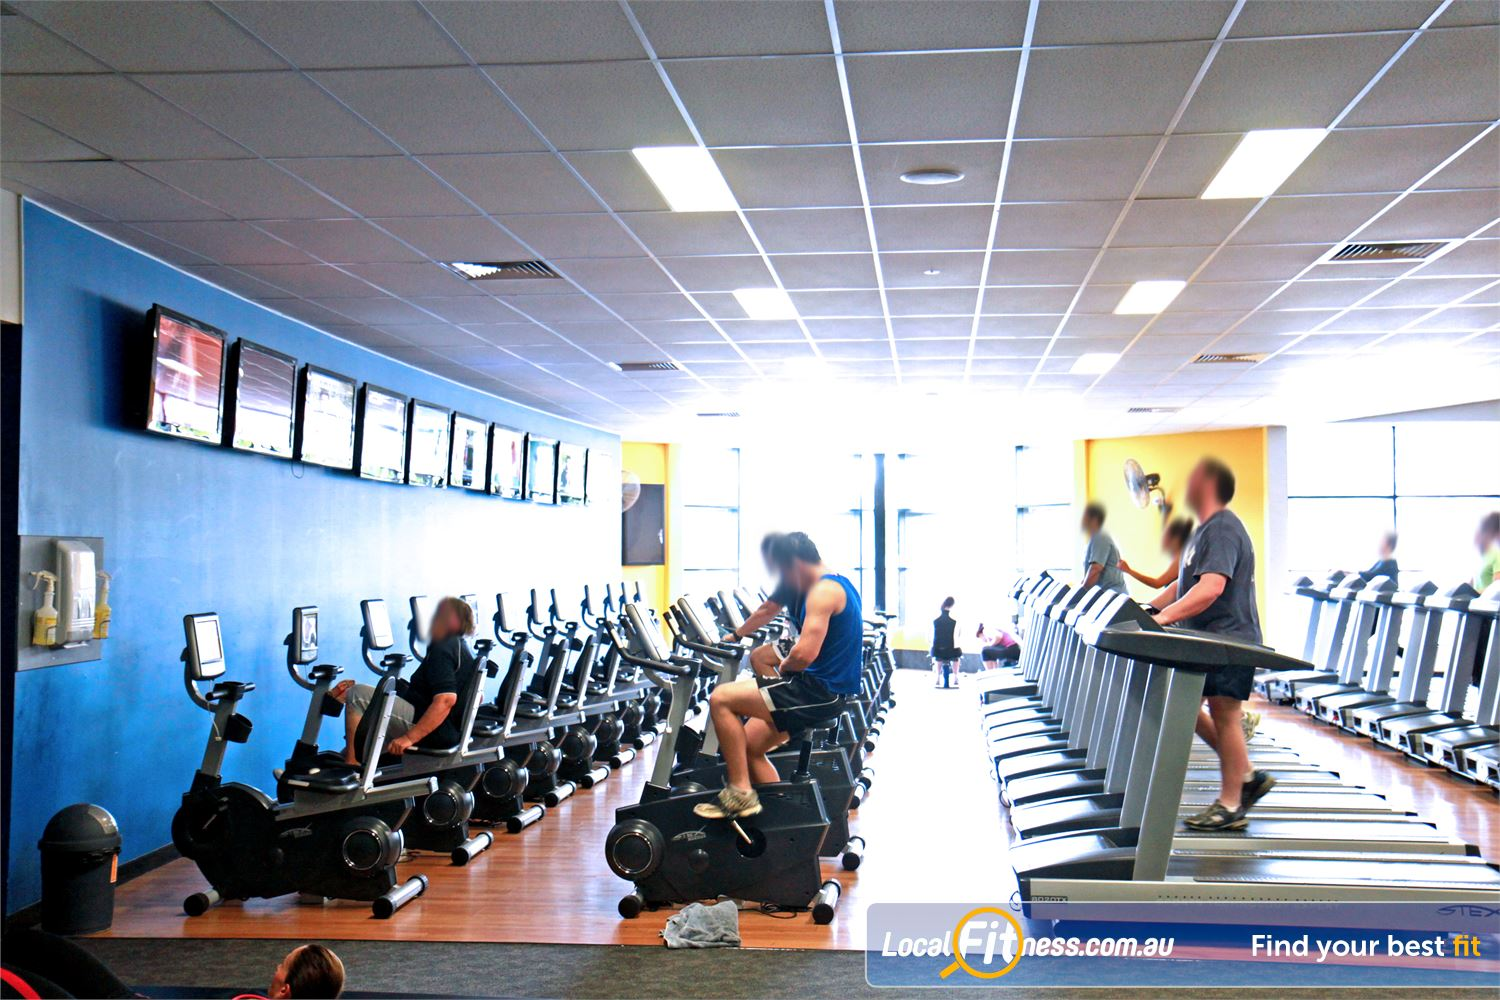 Goodlife Health Clubs Holland Park The latest cycle bikes, cross trainers and treadmills from Stex Fitness.